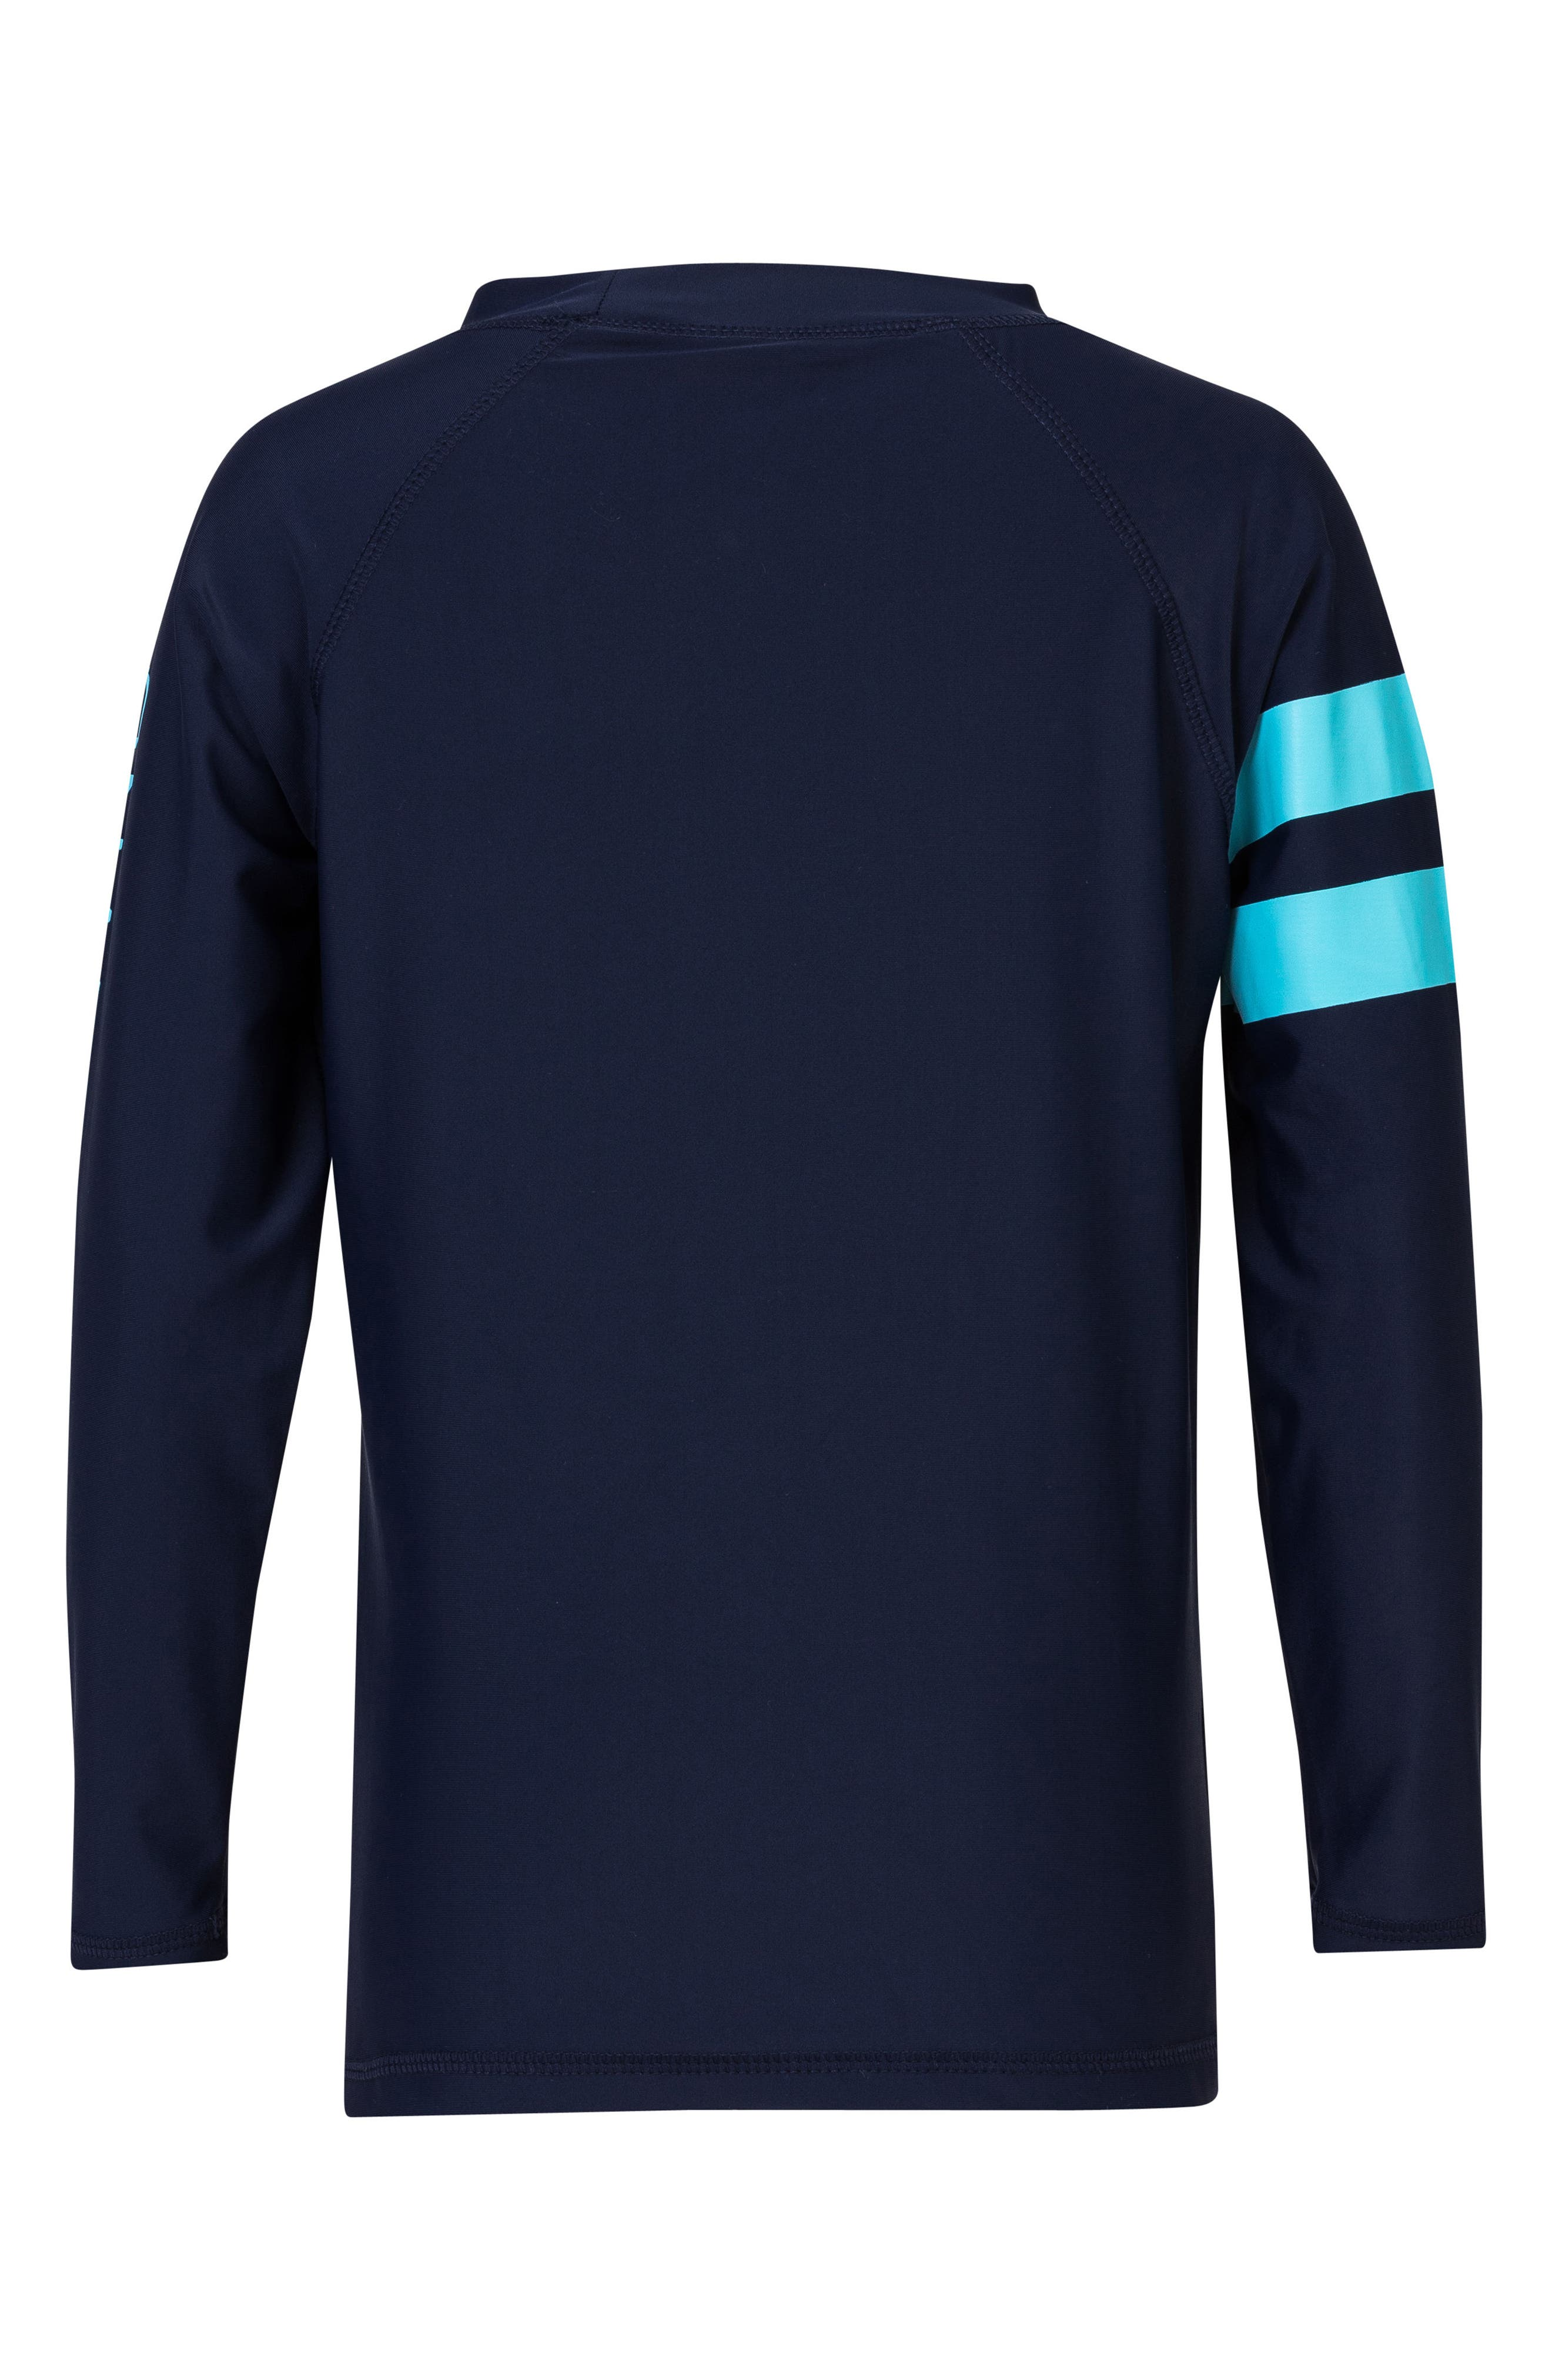 Raglan Long Sleeve Rashguard,                             Alternate thumbnail 2, color,                             NAVY/ LIGHT BLUE STRIPE